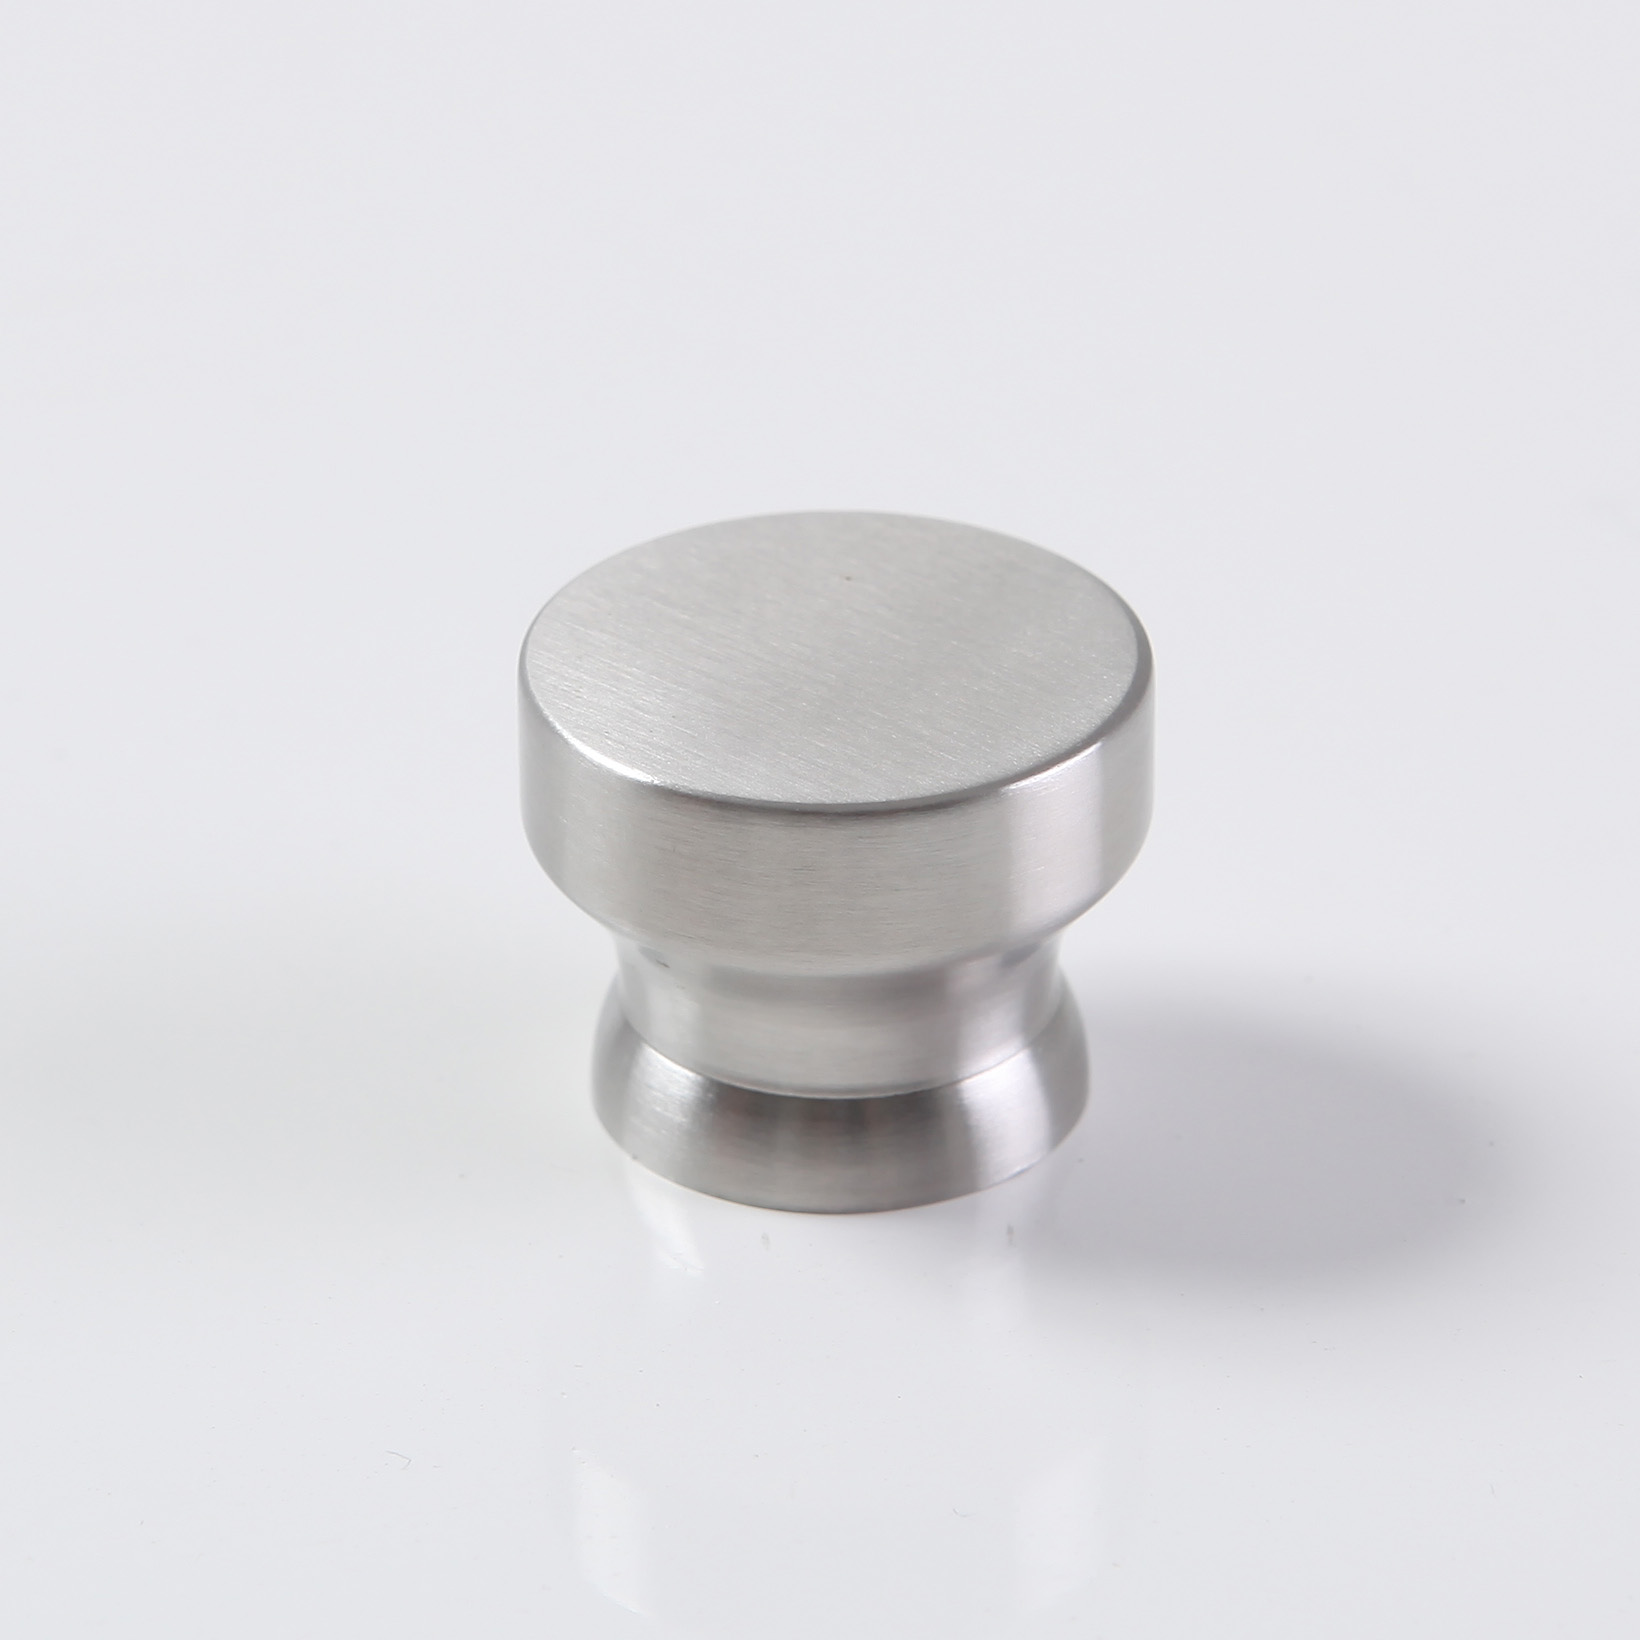 304 stainless steel cabinet knobs cabinets knobs for Cabinets handles and knobs